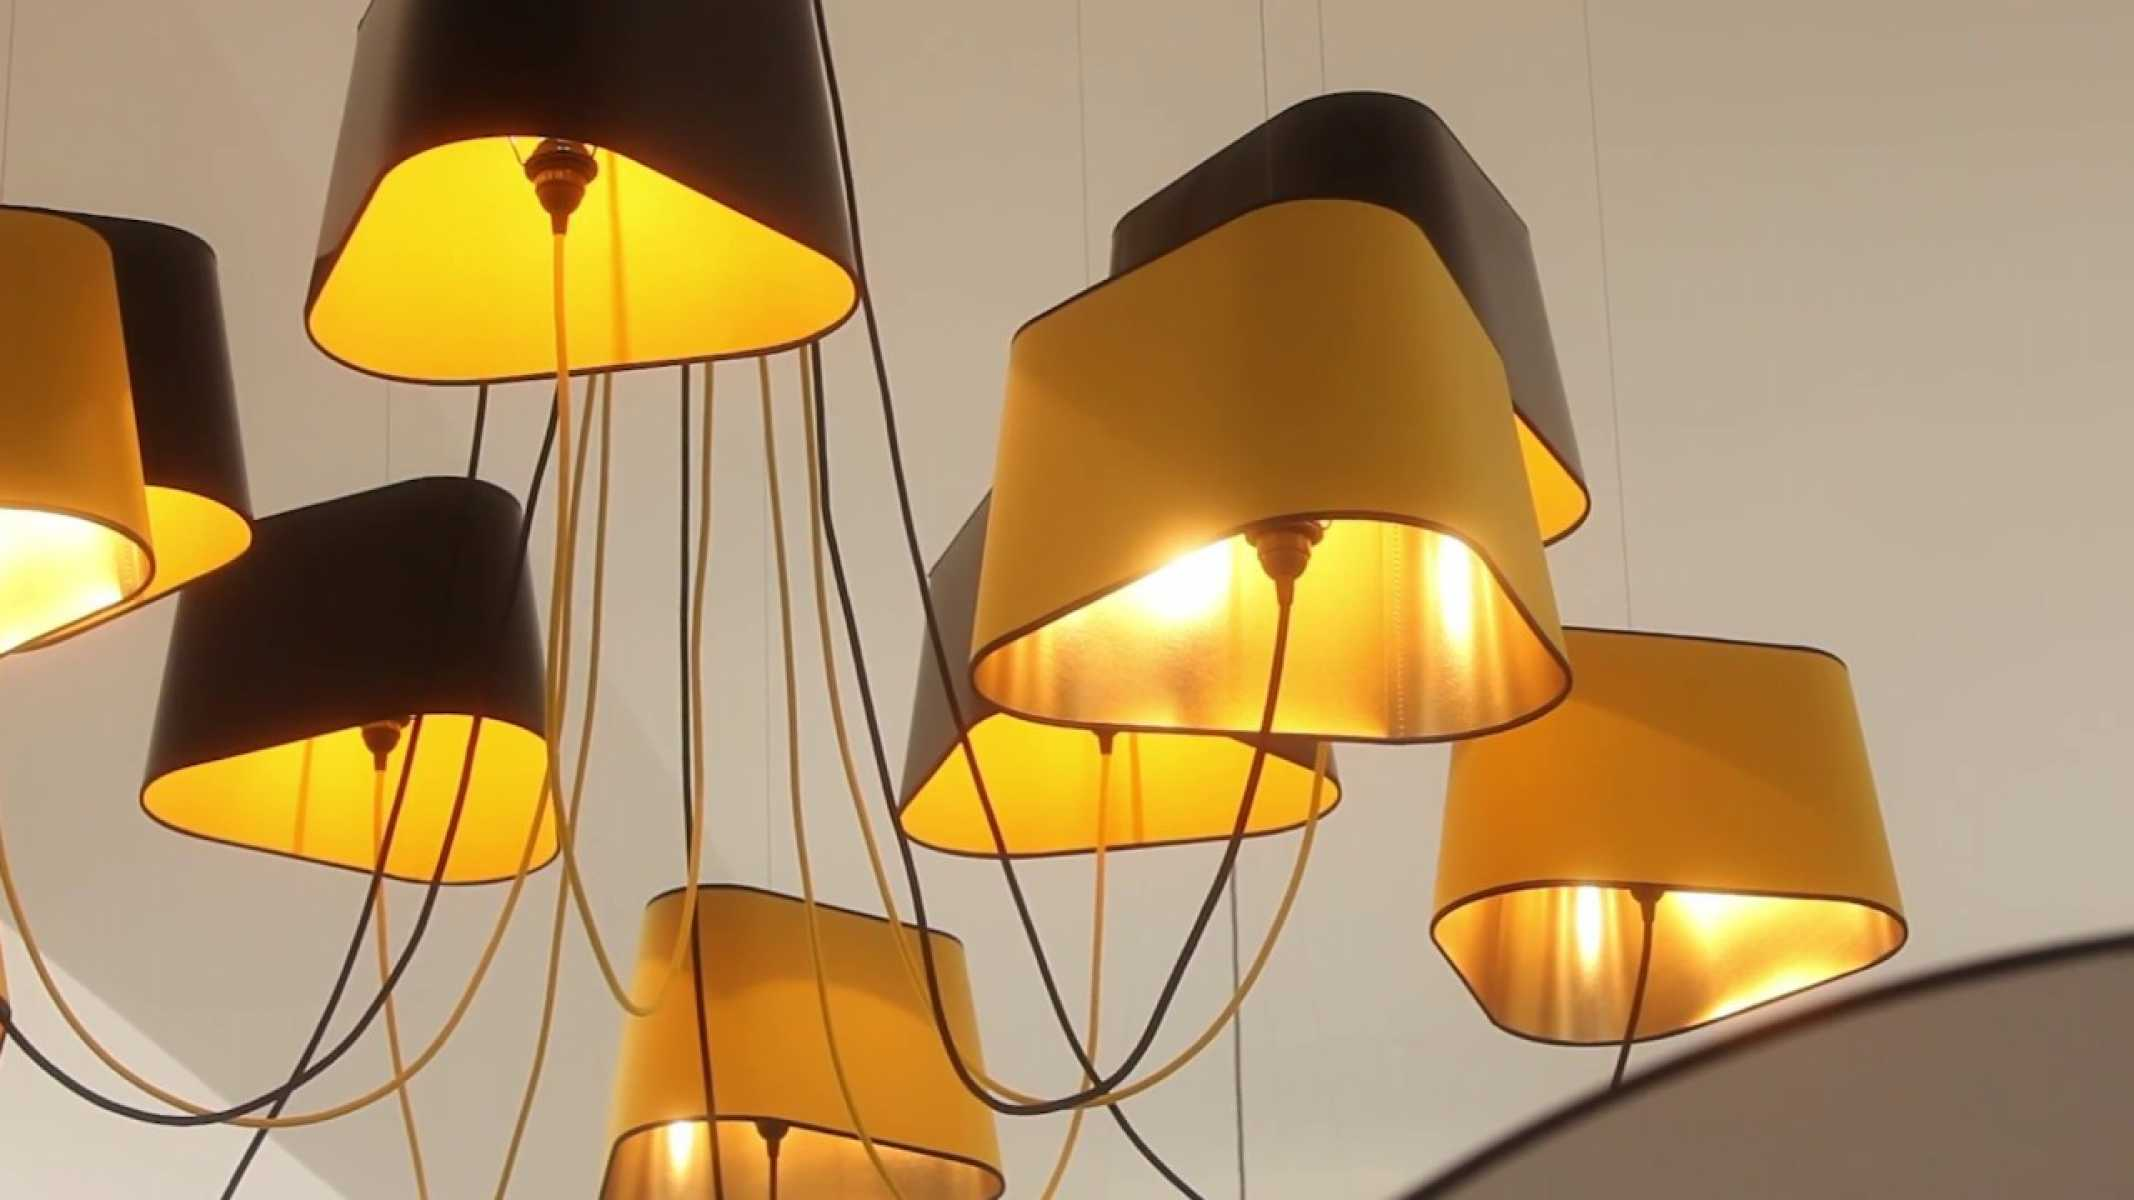 Gaismas Maģija - The largest chain of lighting stores in Latvia, lamps, chandeliers